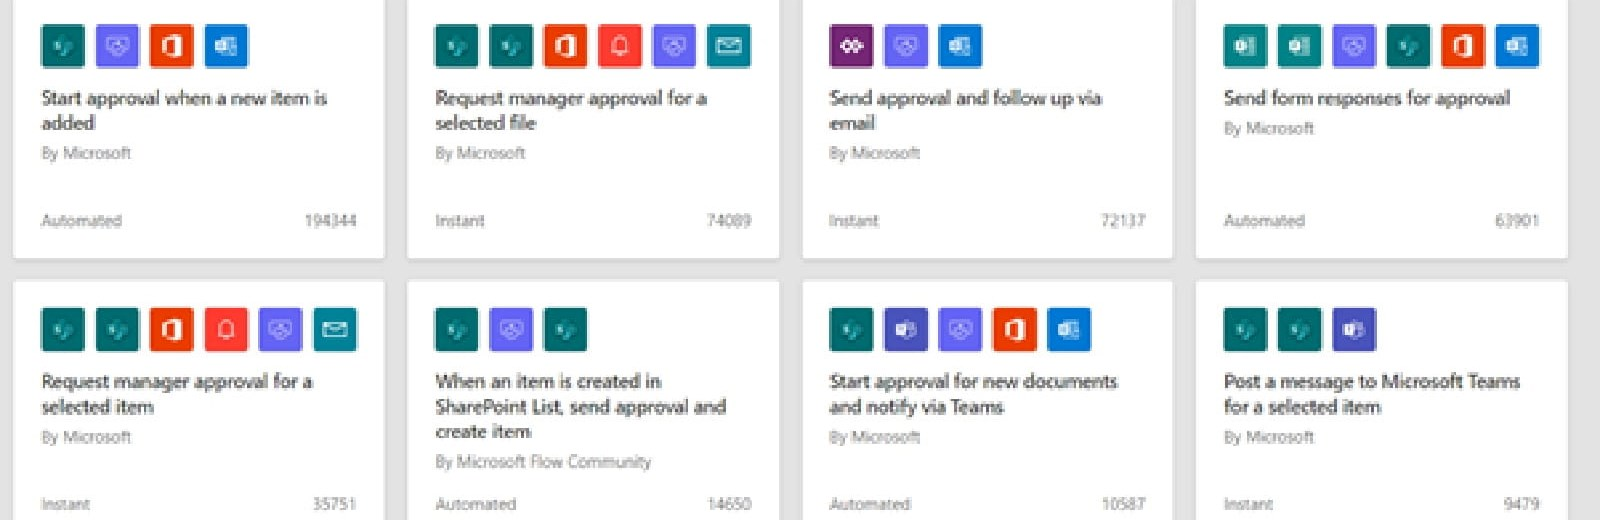 Other Microsoft Office 365 Apps